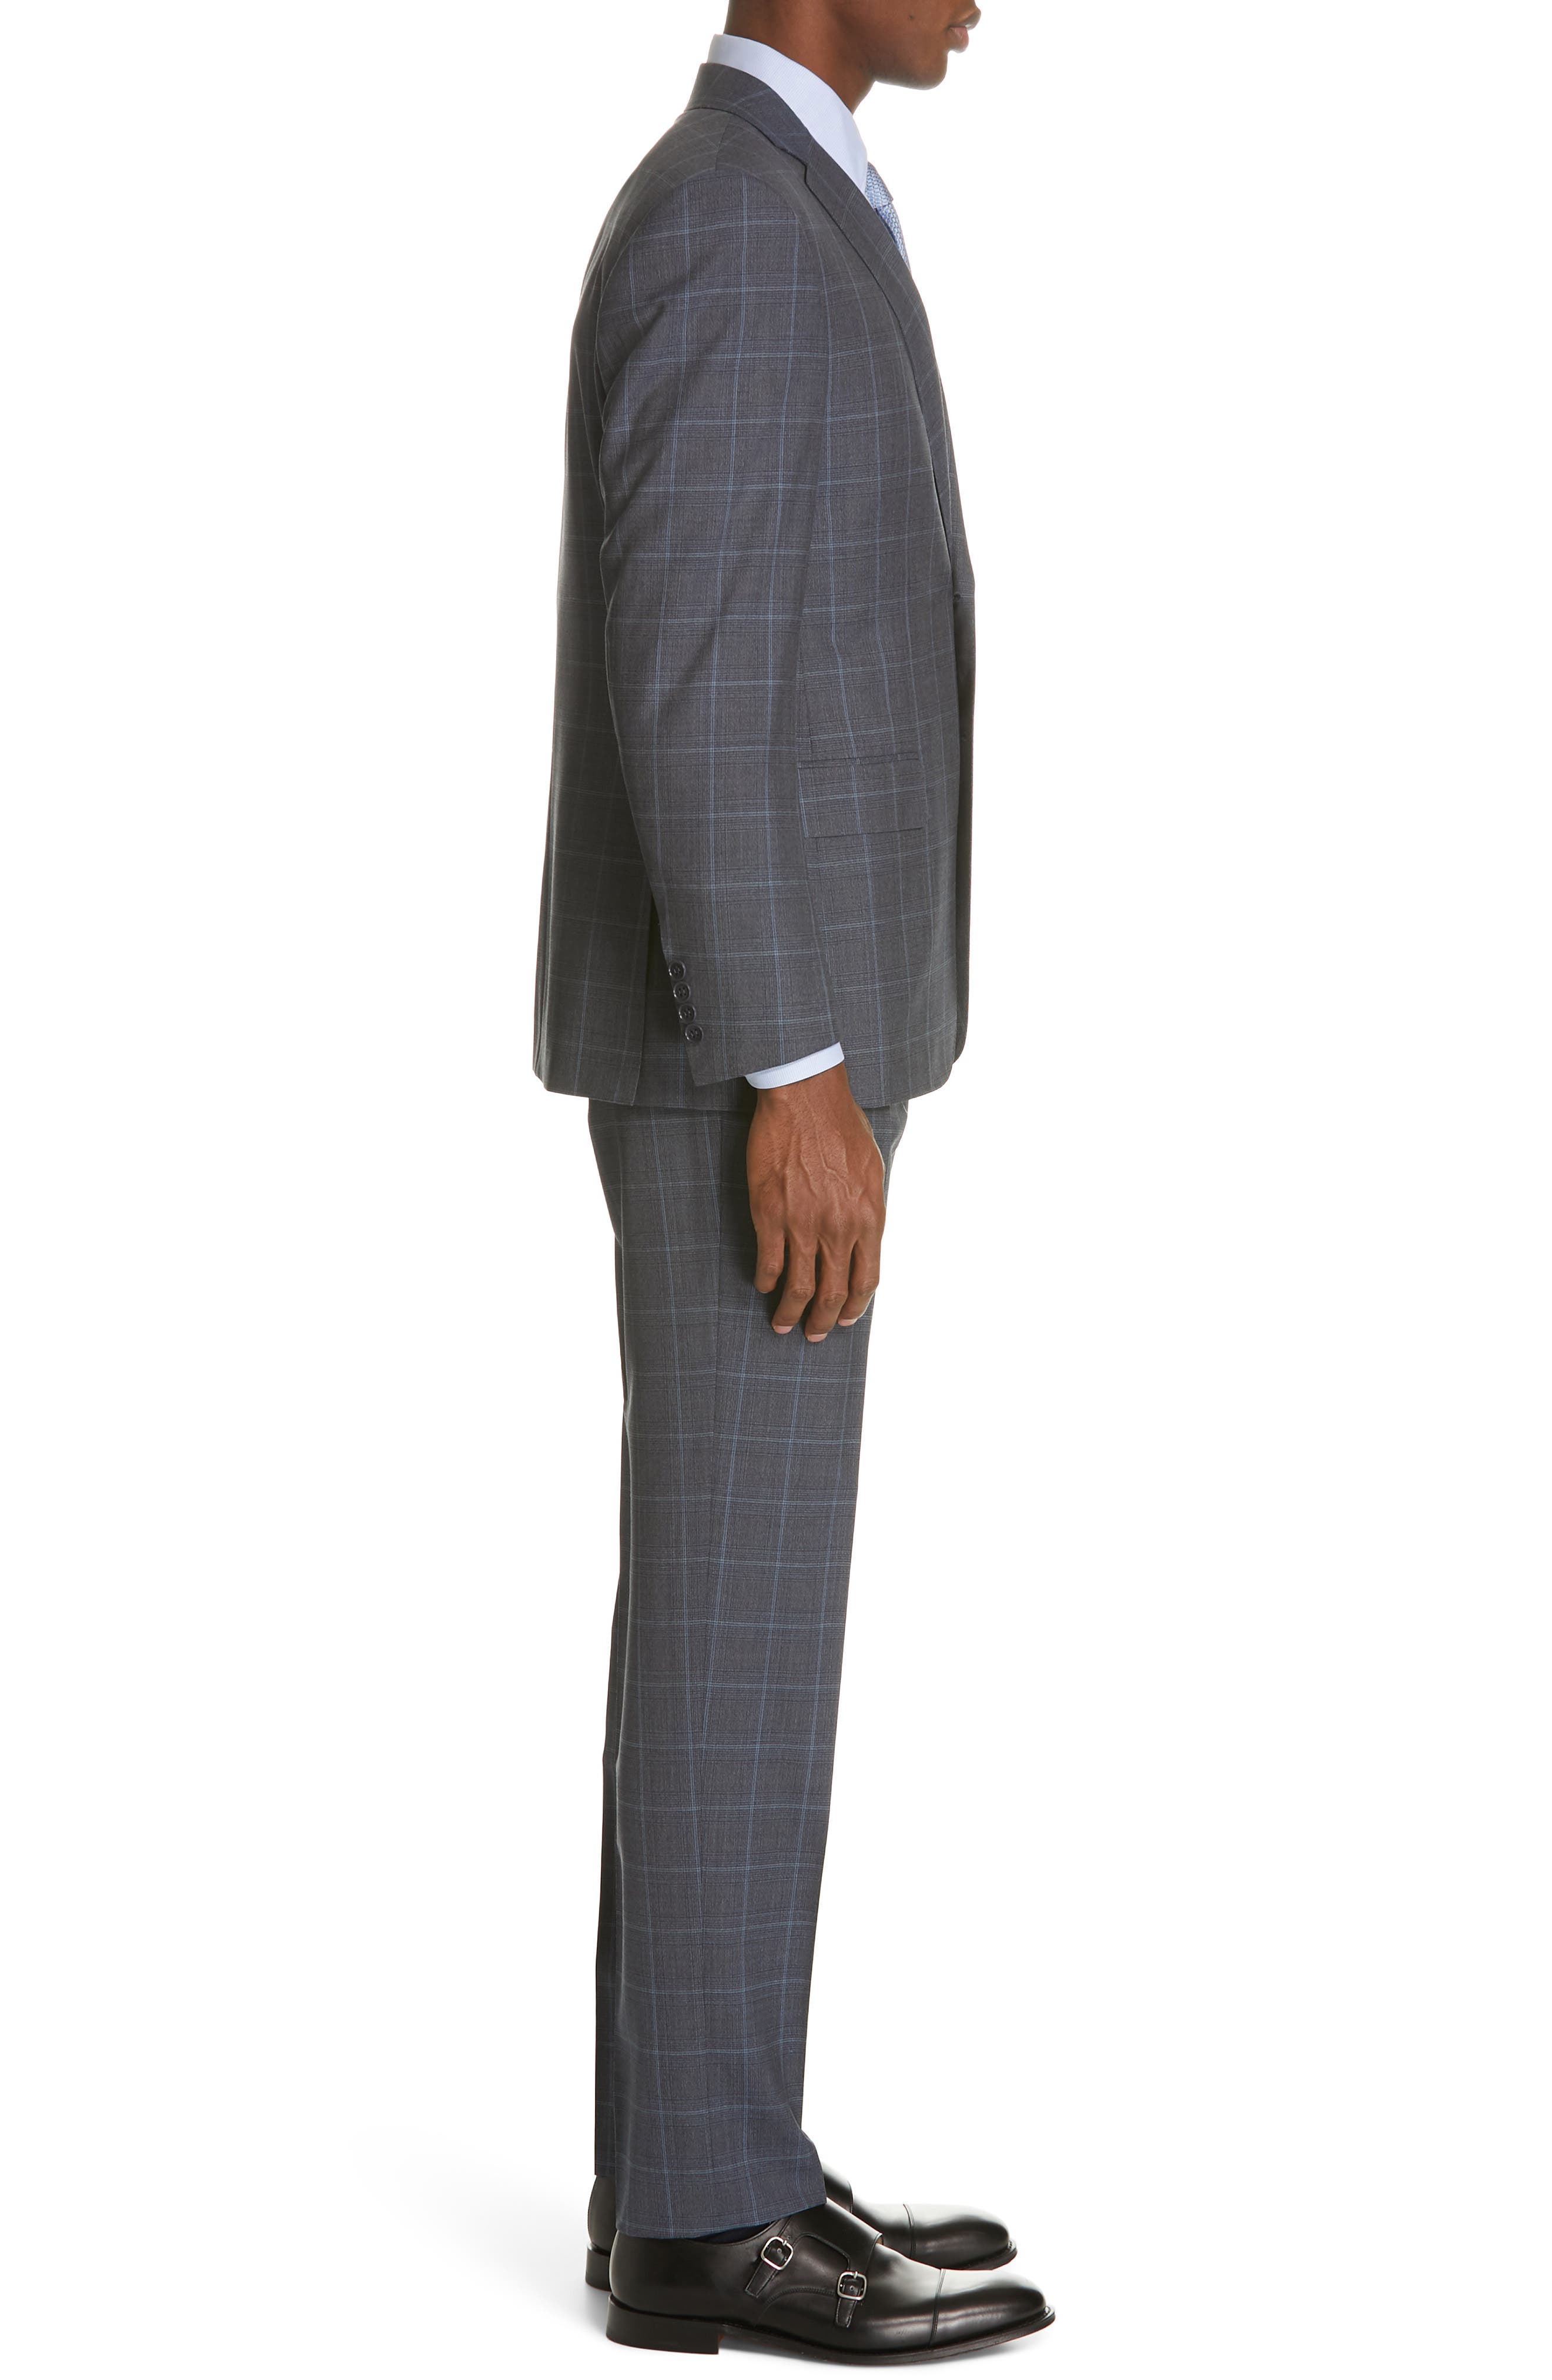 CANALI, Siena Soft Classic Fit Plaid Wool Suit, Alternate thumbnail 3, color, CHARCOAL